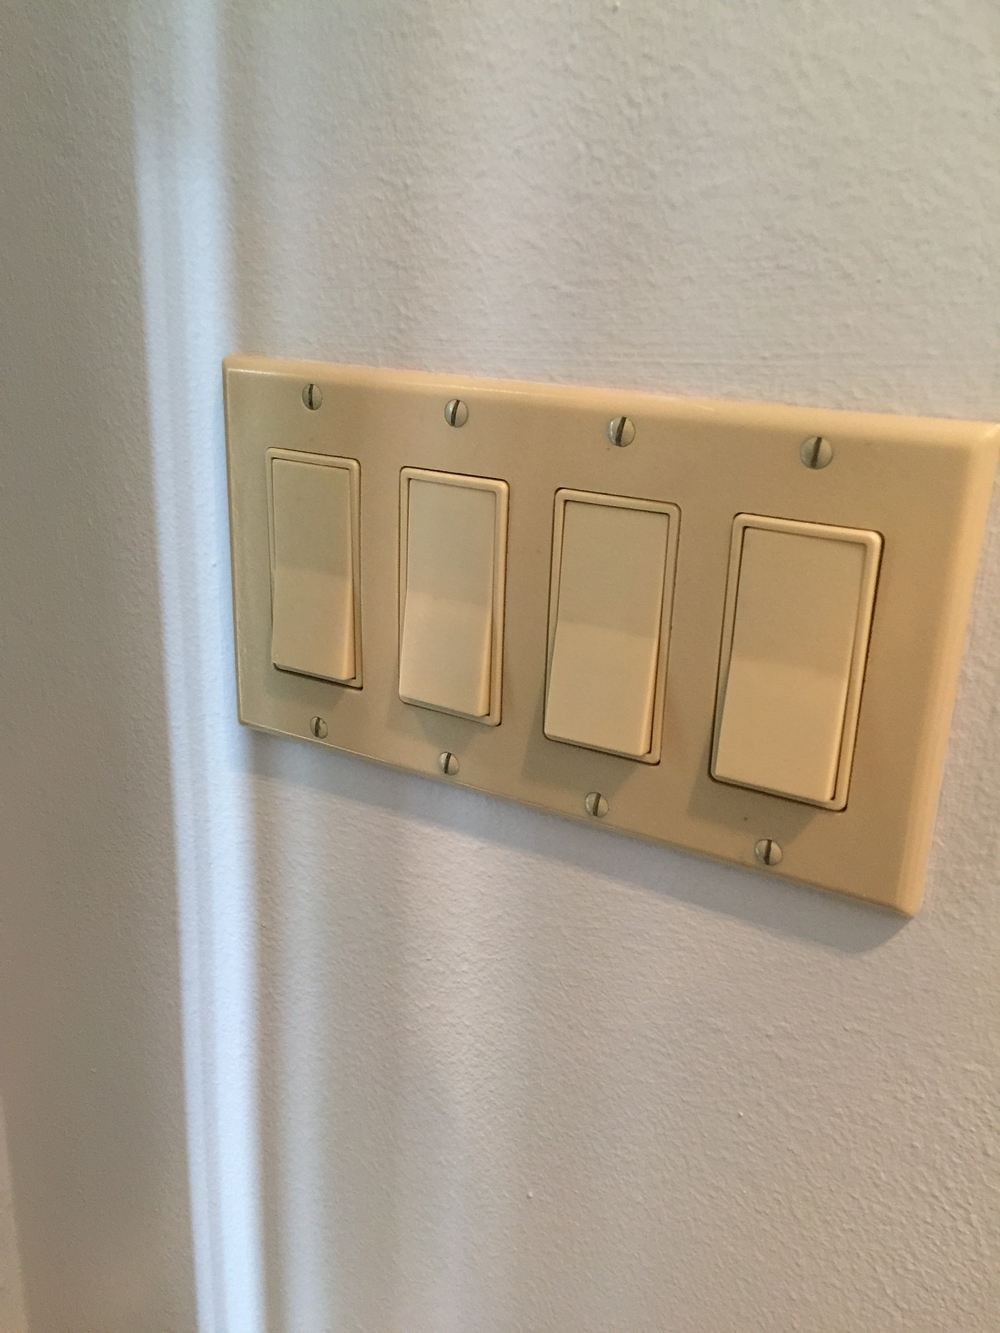 Ivory switches and outlets to go.